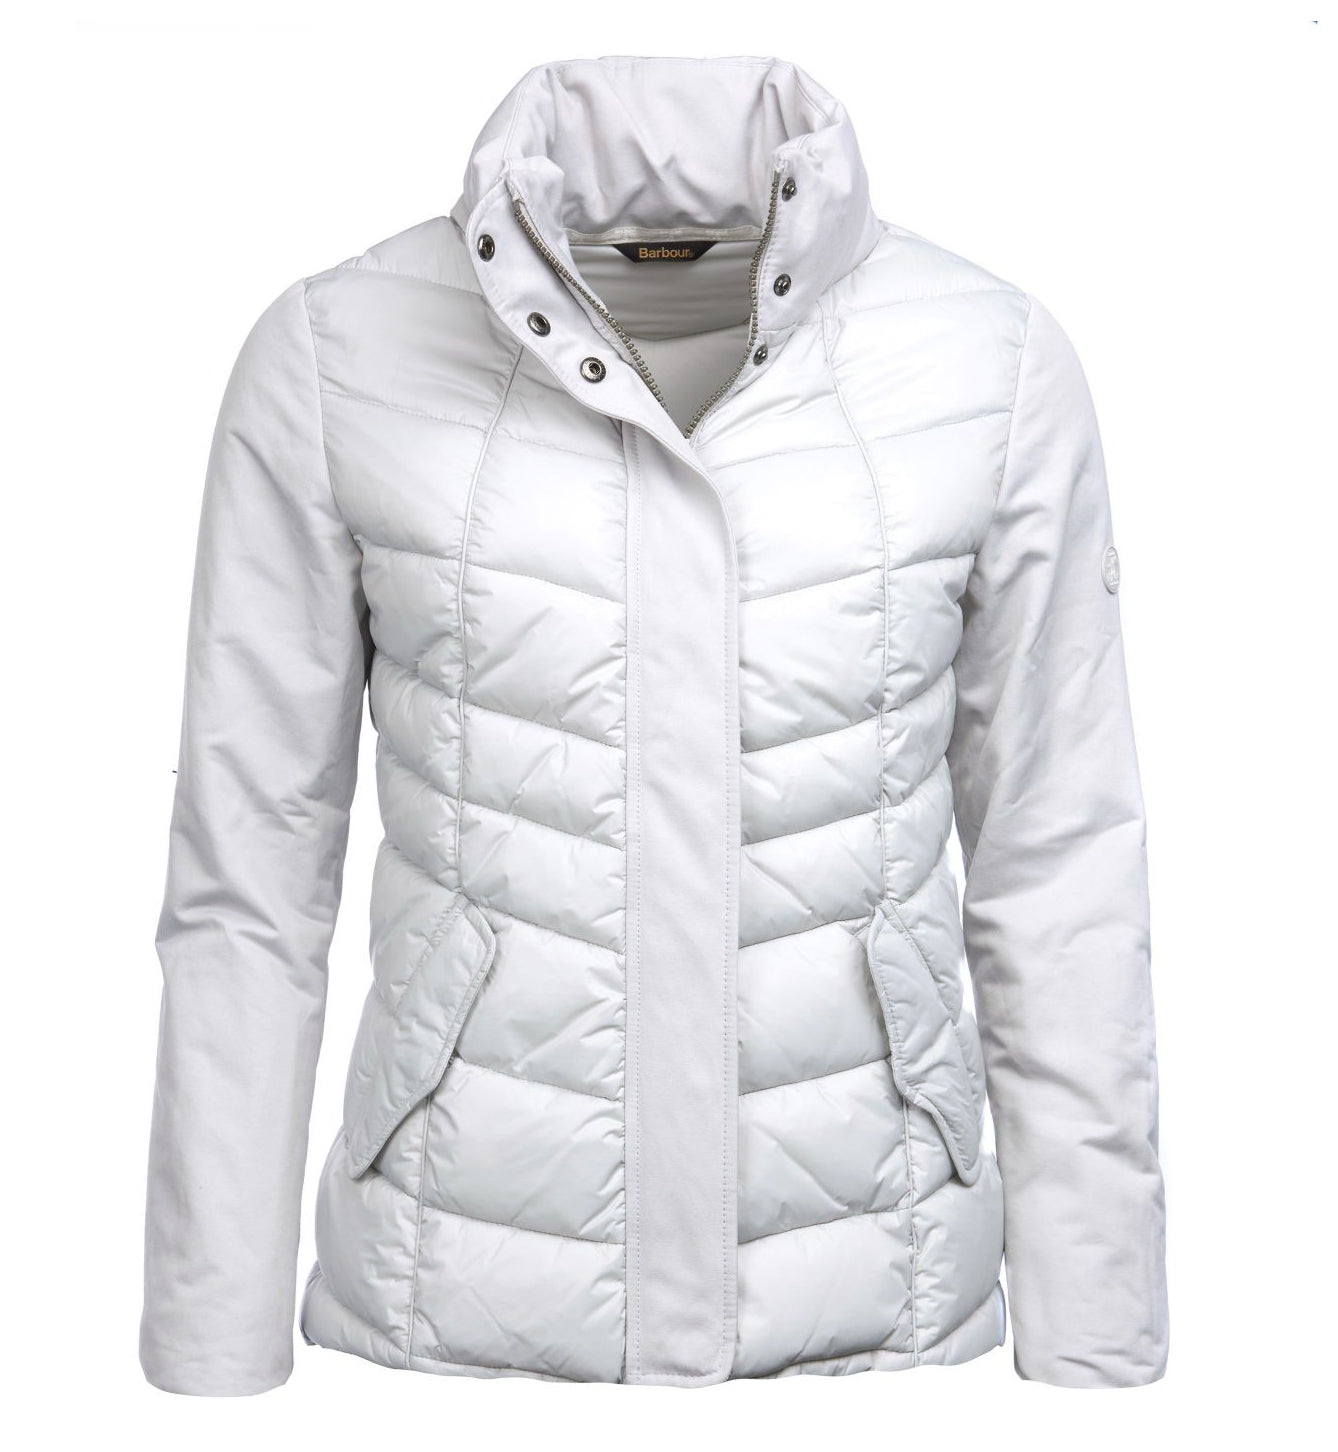 Barbour Hayle Quilted Jacket - North Shore Saddlery